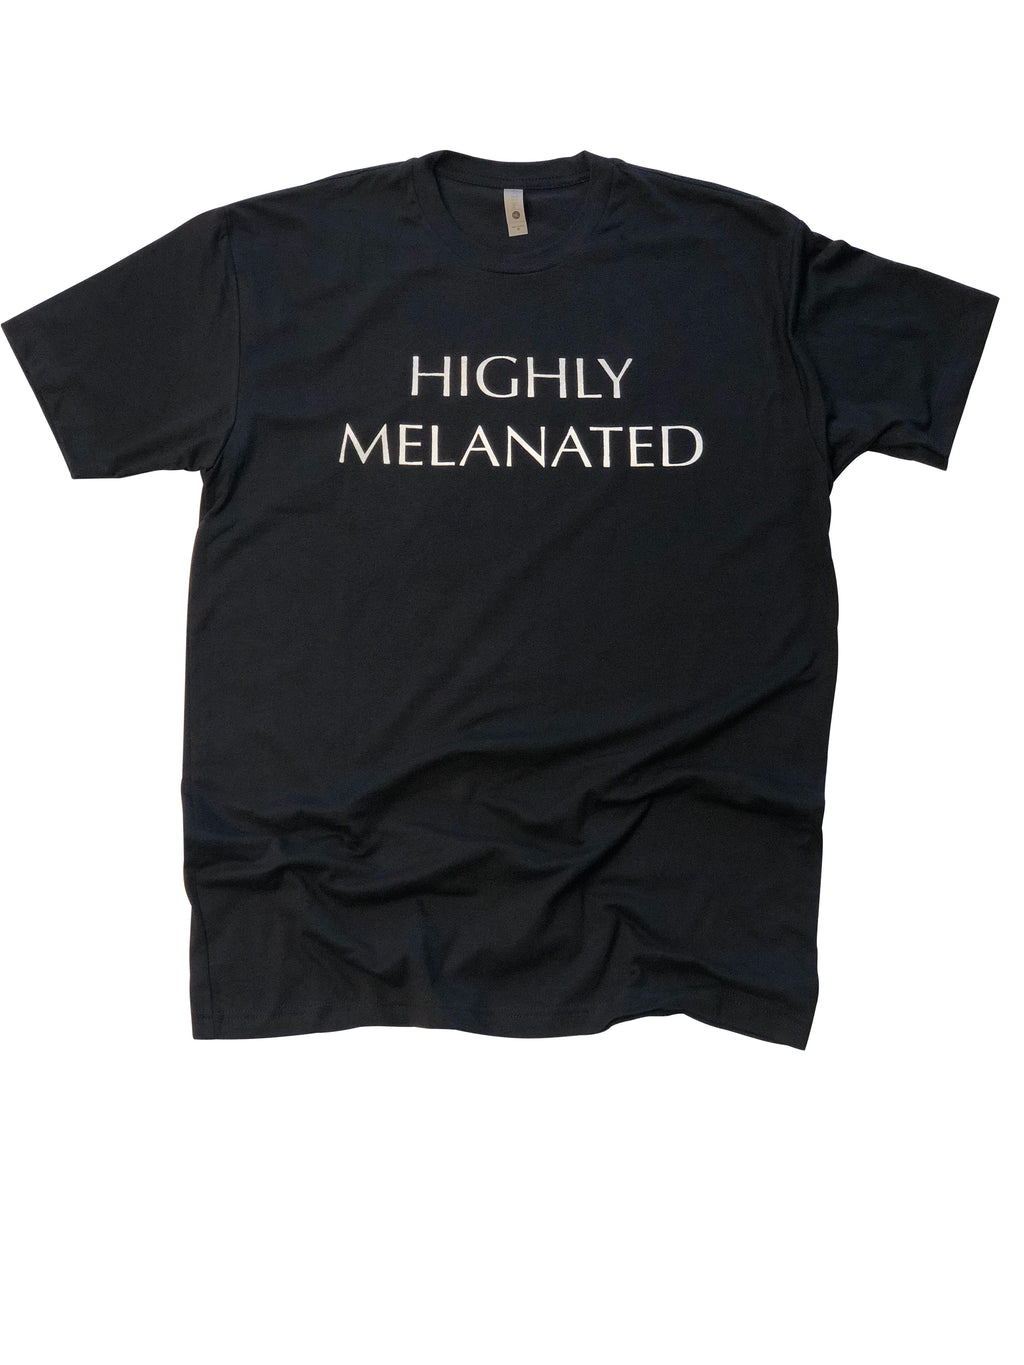 Highly Melanated Kids Shirt - Trunk Series, LLC